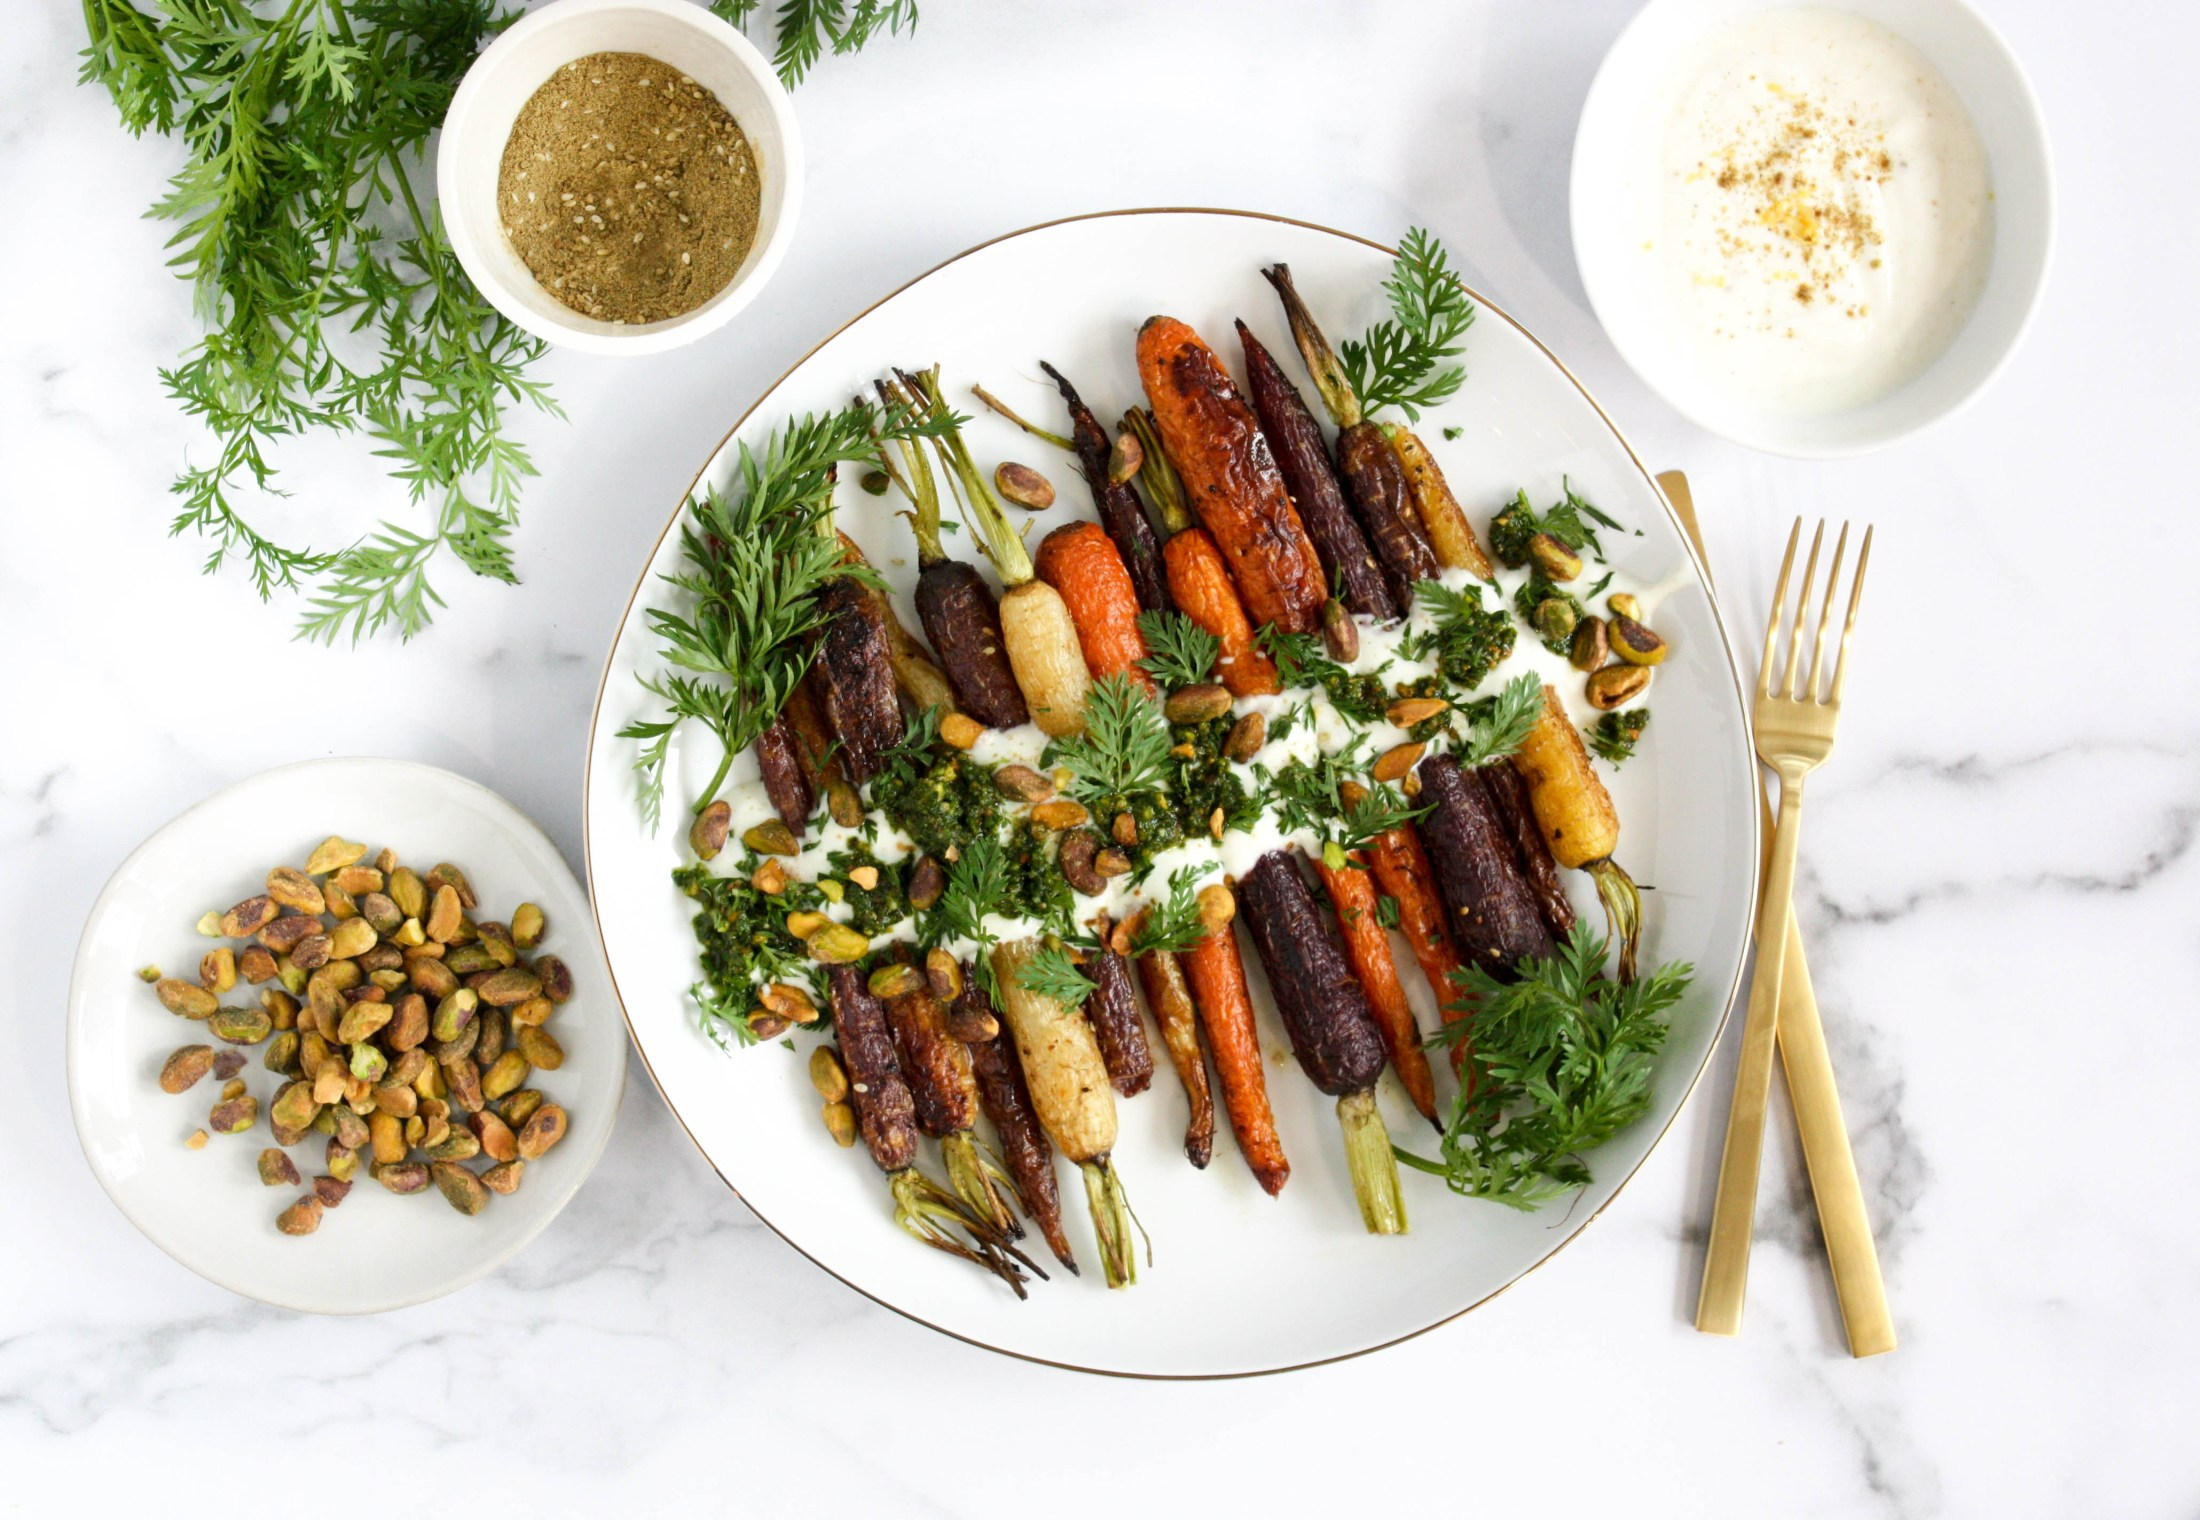 Roasted Carrots with Carrot Top Pesto - Graceinthecrumbs.com